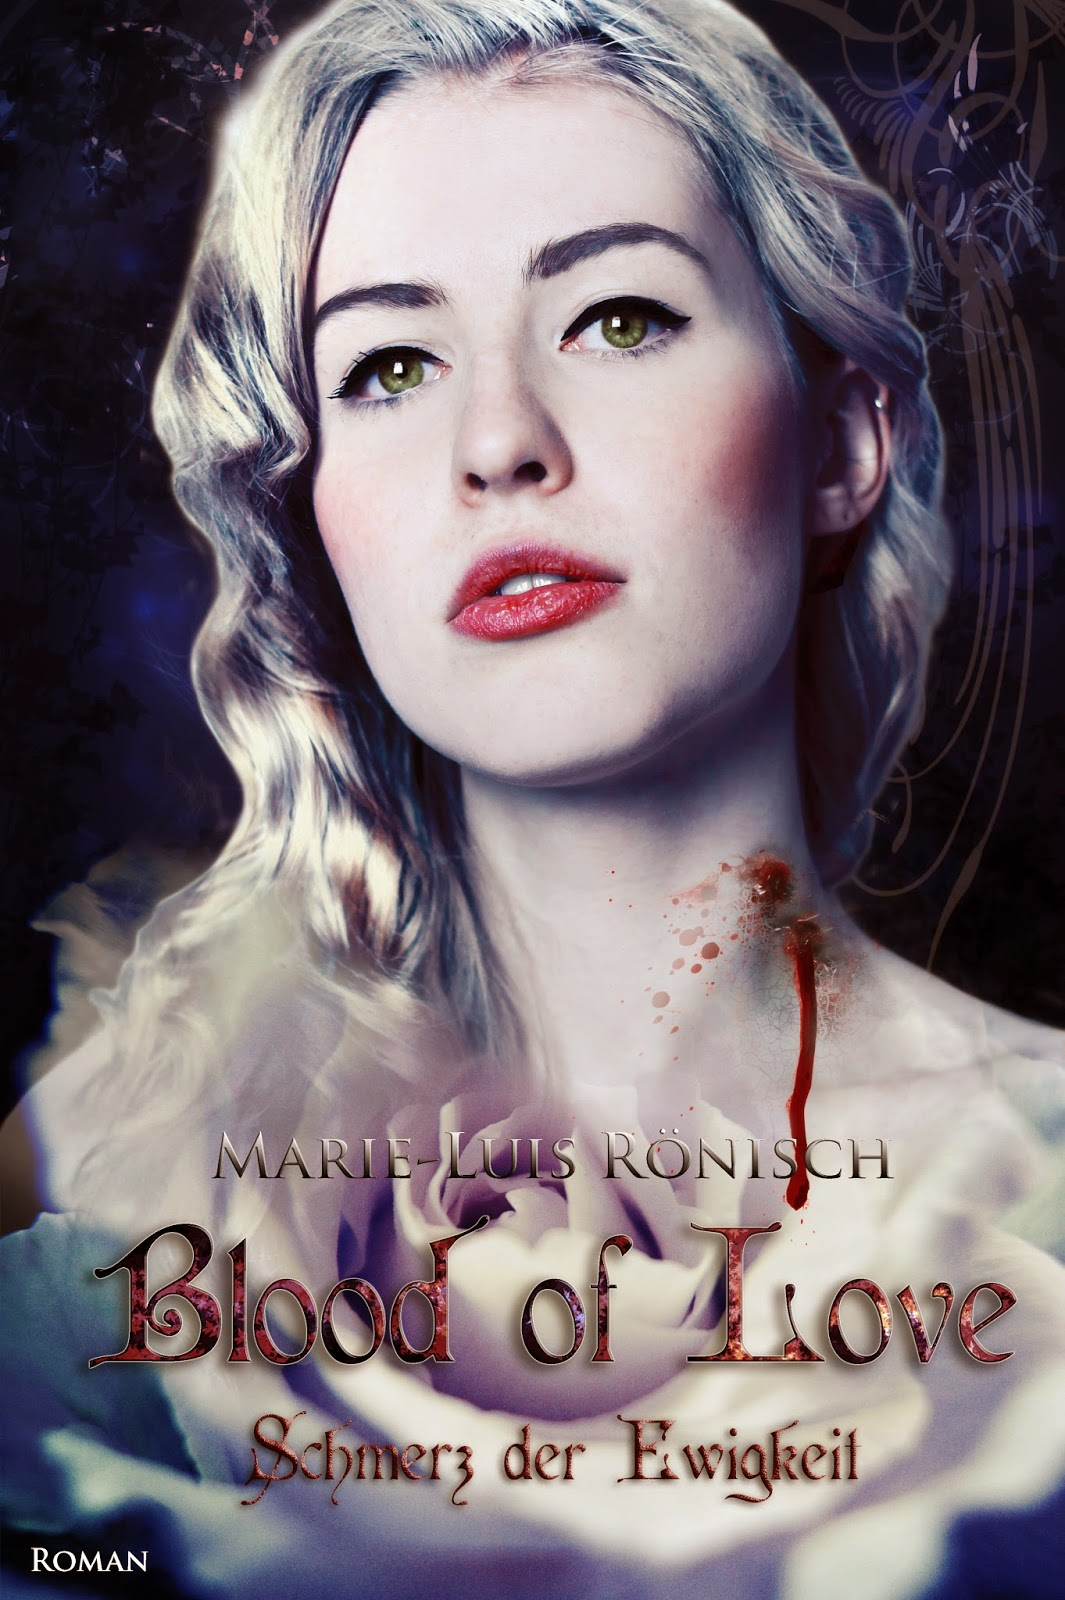 http://www.bookrix.de/_ebook-marie-luis-roenisch-blood-of-love/